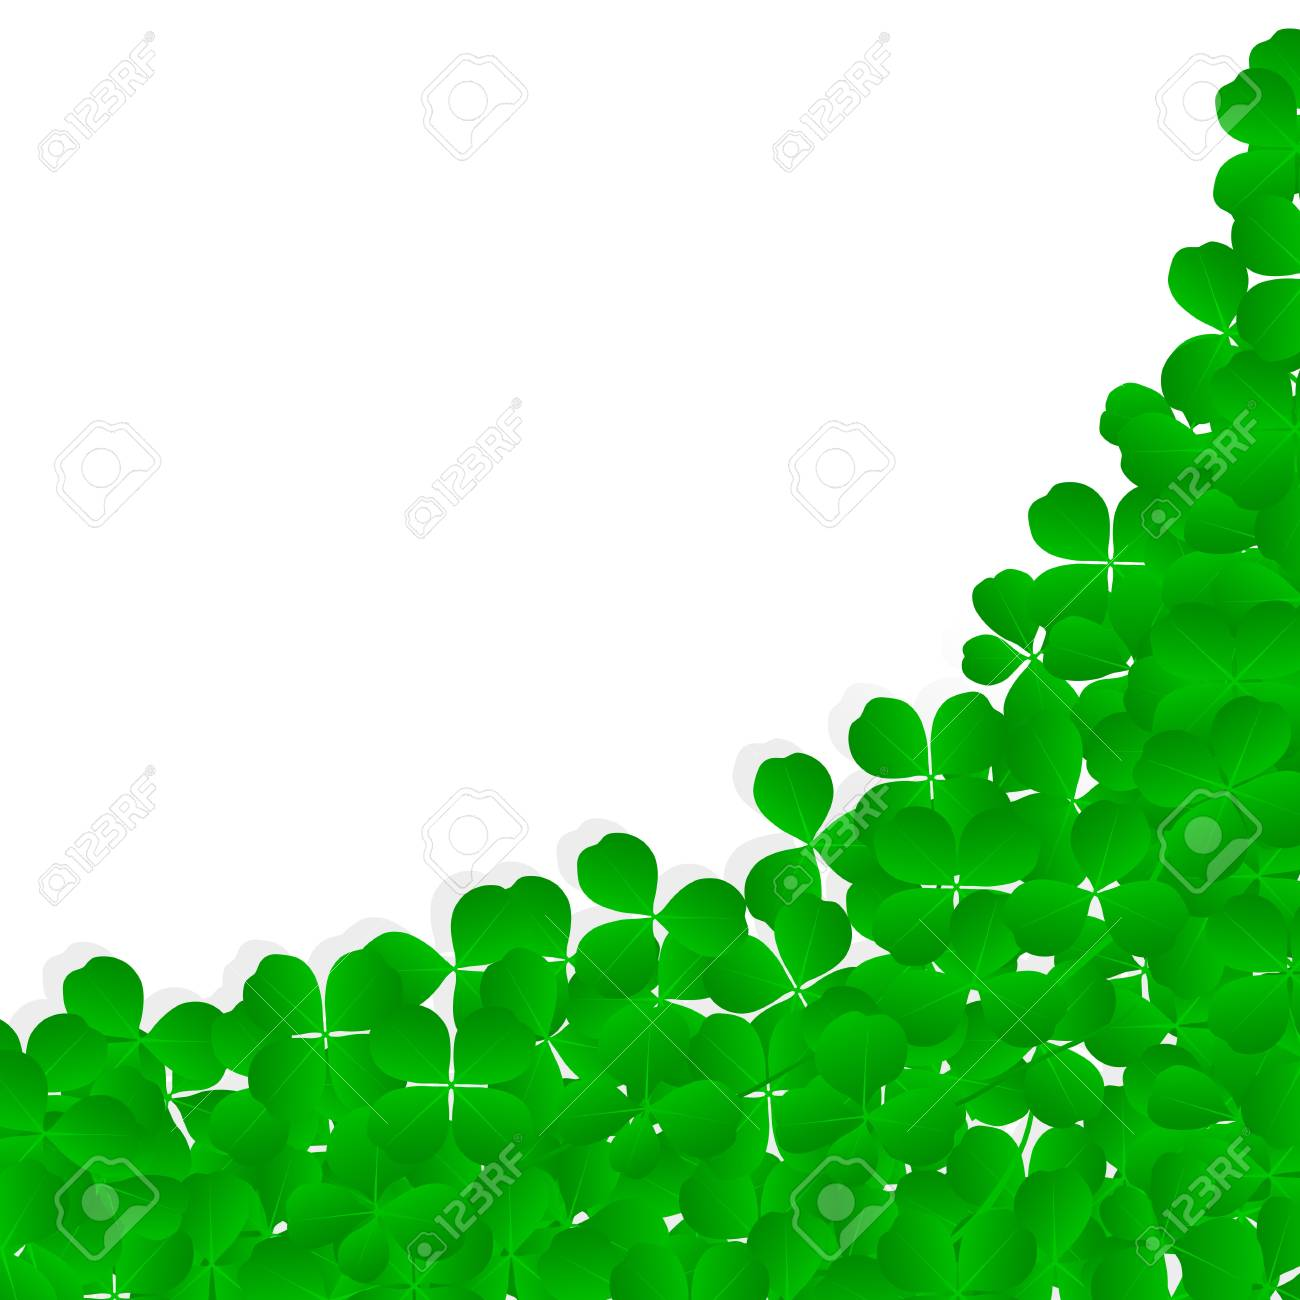 Irish four leaf lucky clovers happy St. Patrick's day background vector Stock Vector - 17871170